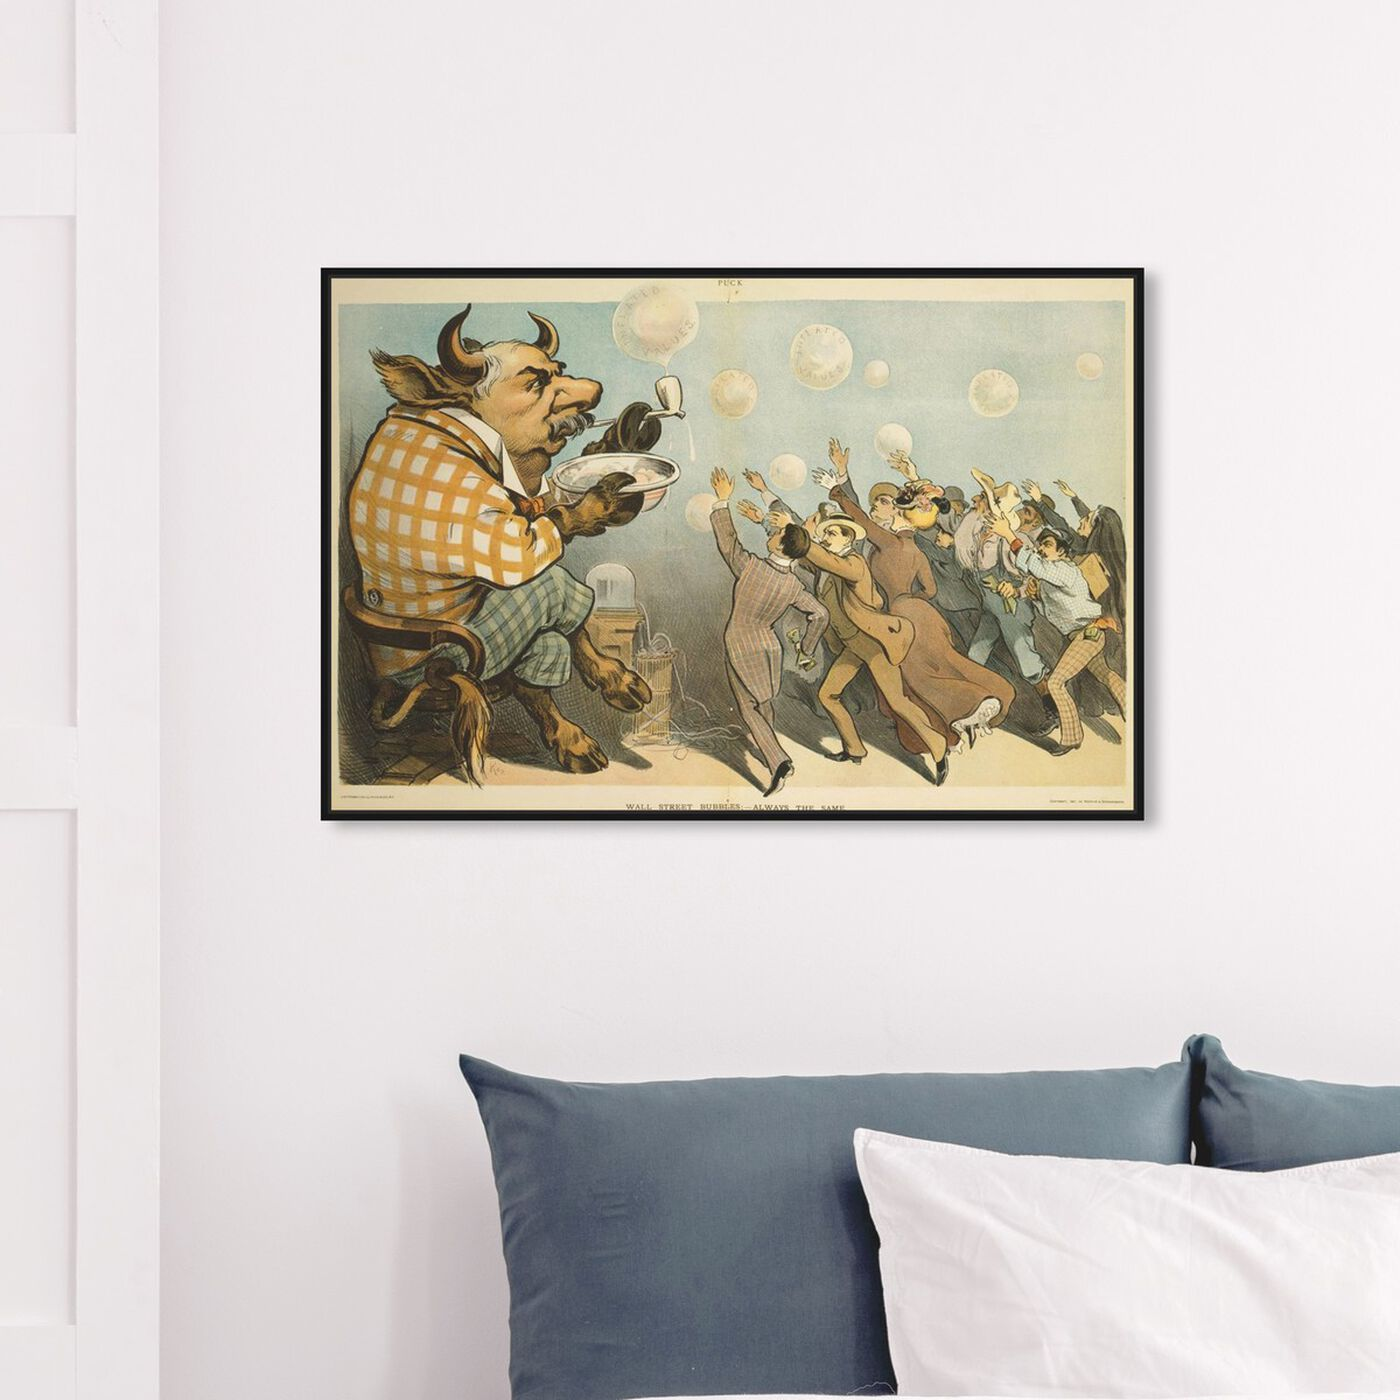 Hanging view of Wall Street Bubbles featuring classic and figurative and modern classic art.